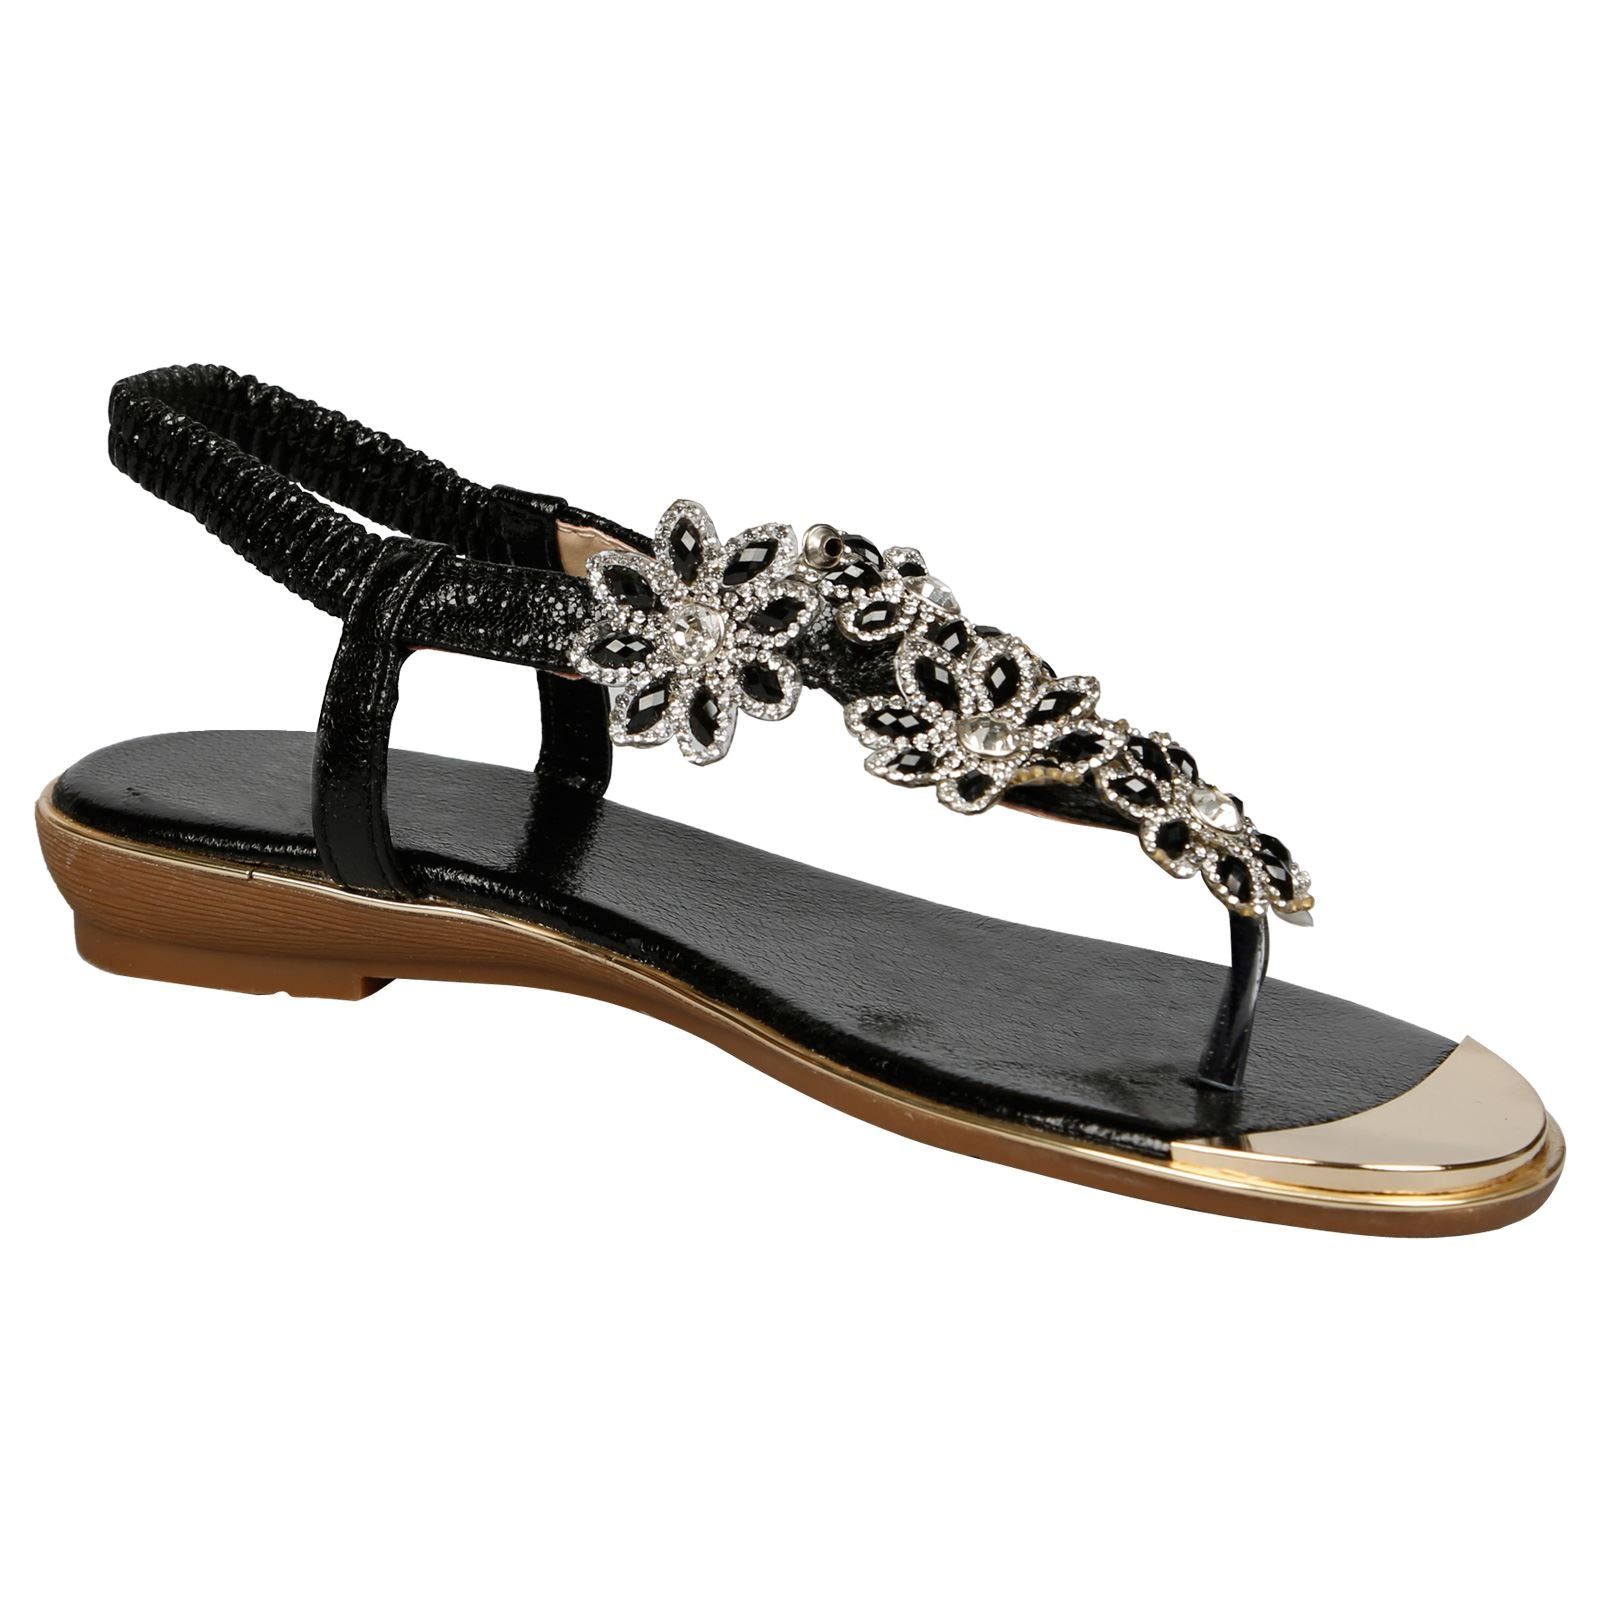 Tayla Floral Diamante Sandals in Black